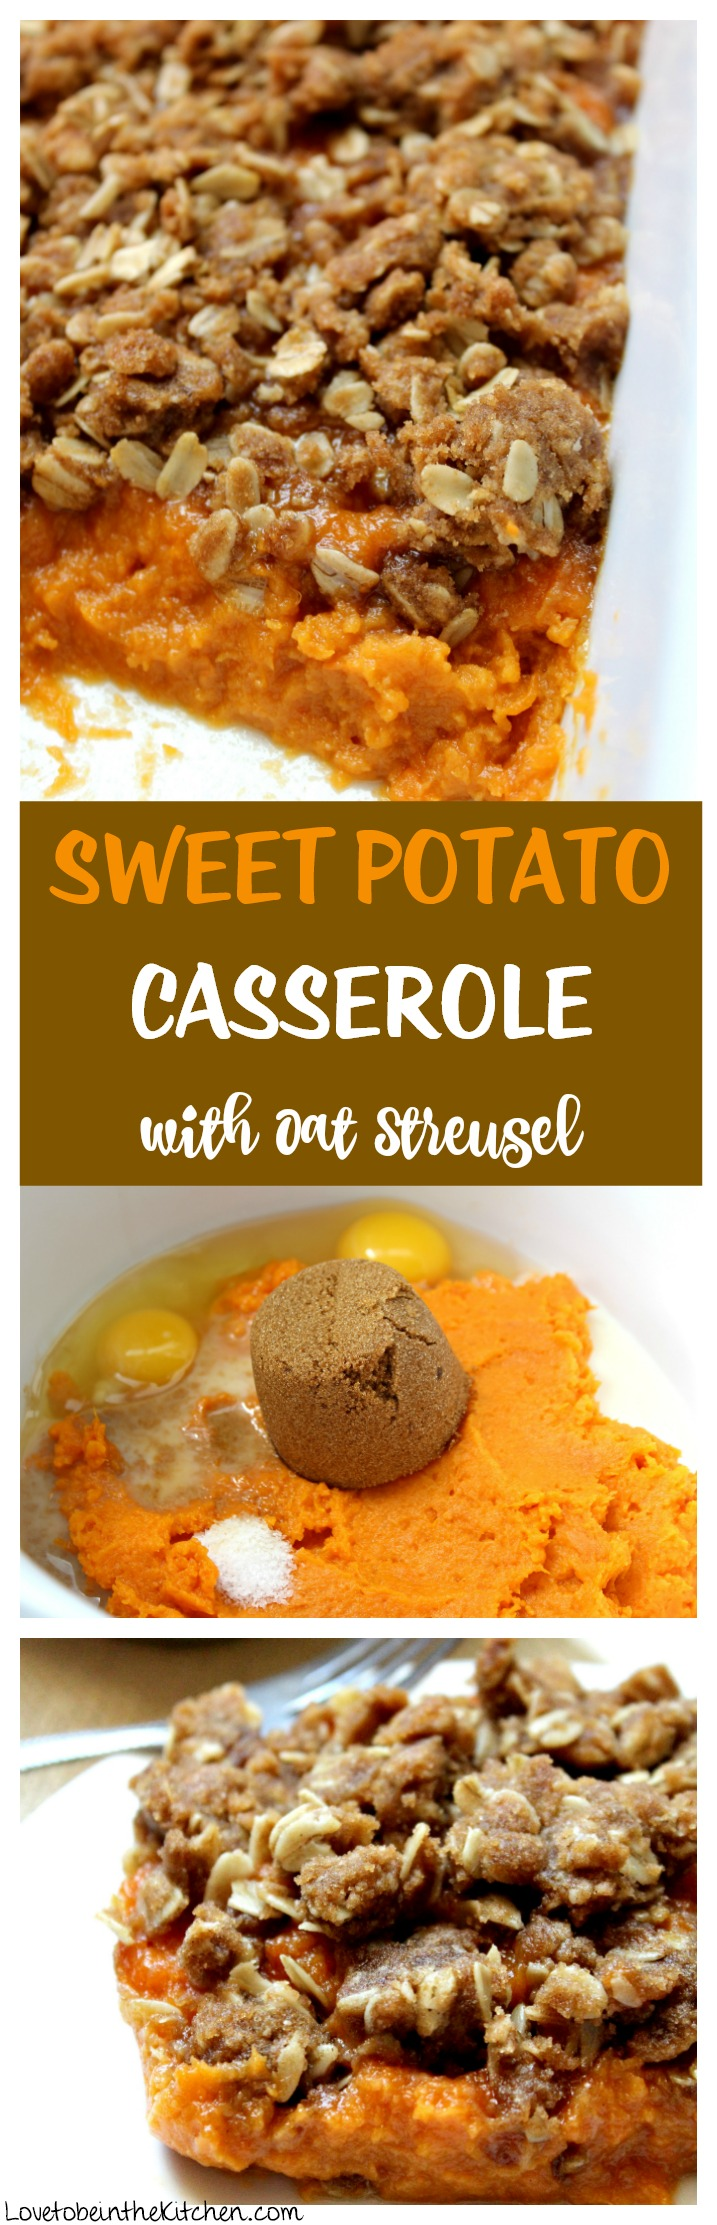 Sweet Potato Casserole with Oat Streusel